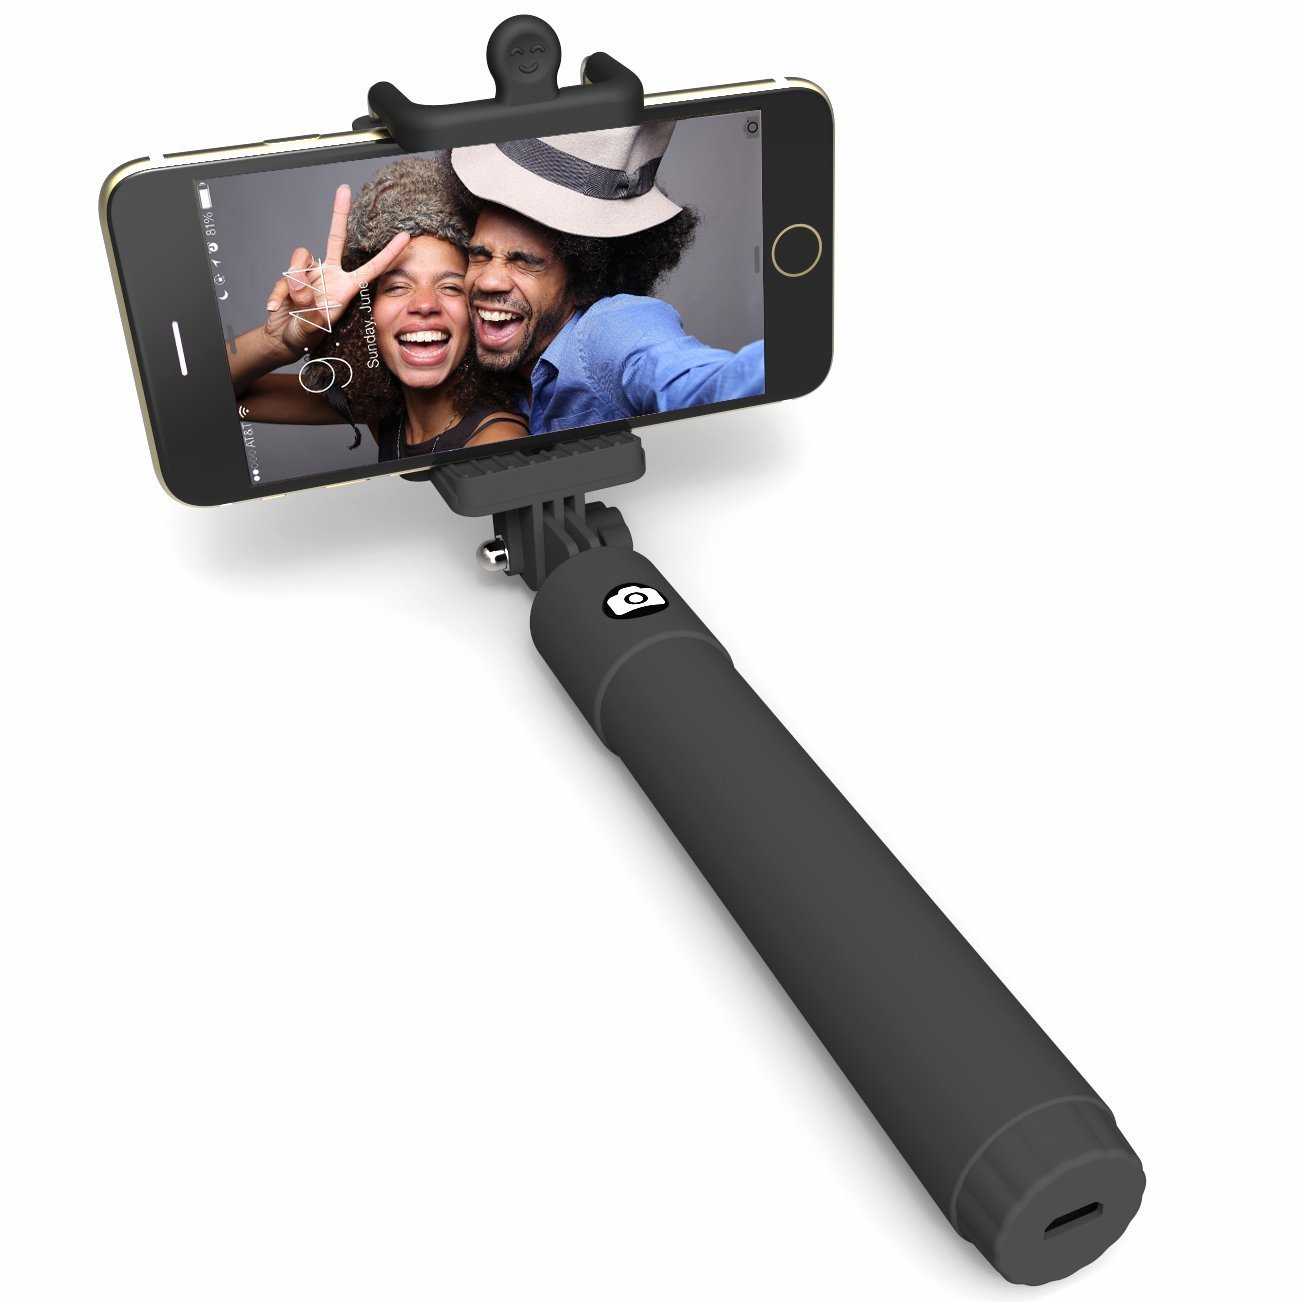 Selfie Stick Perfectday Foldable Extendable Bluetooth Tongsis 3 In 1 Tripod Shutter With Built Remote For Iphone 6s 6 Plus 5 5s